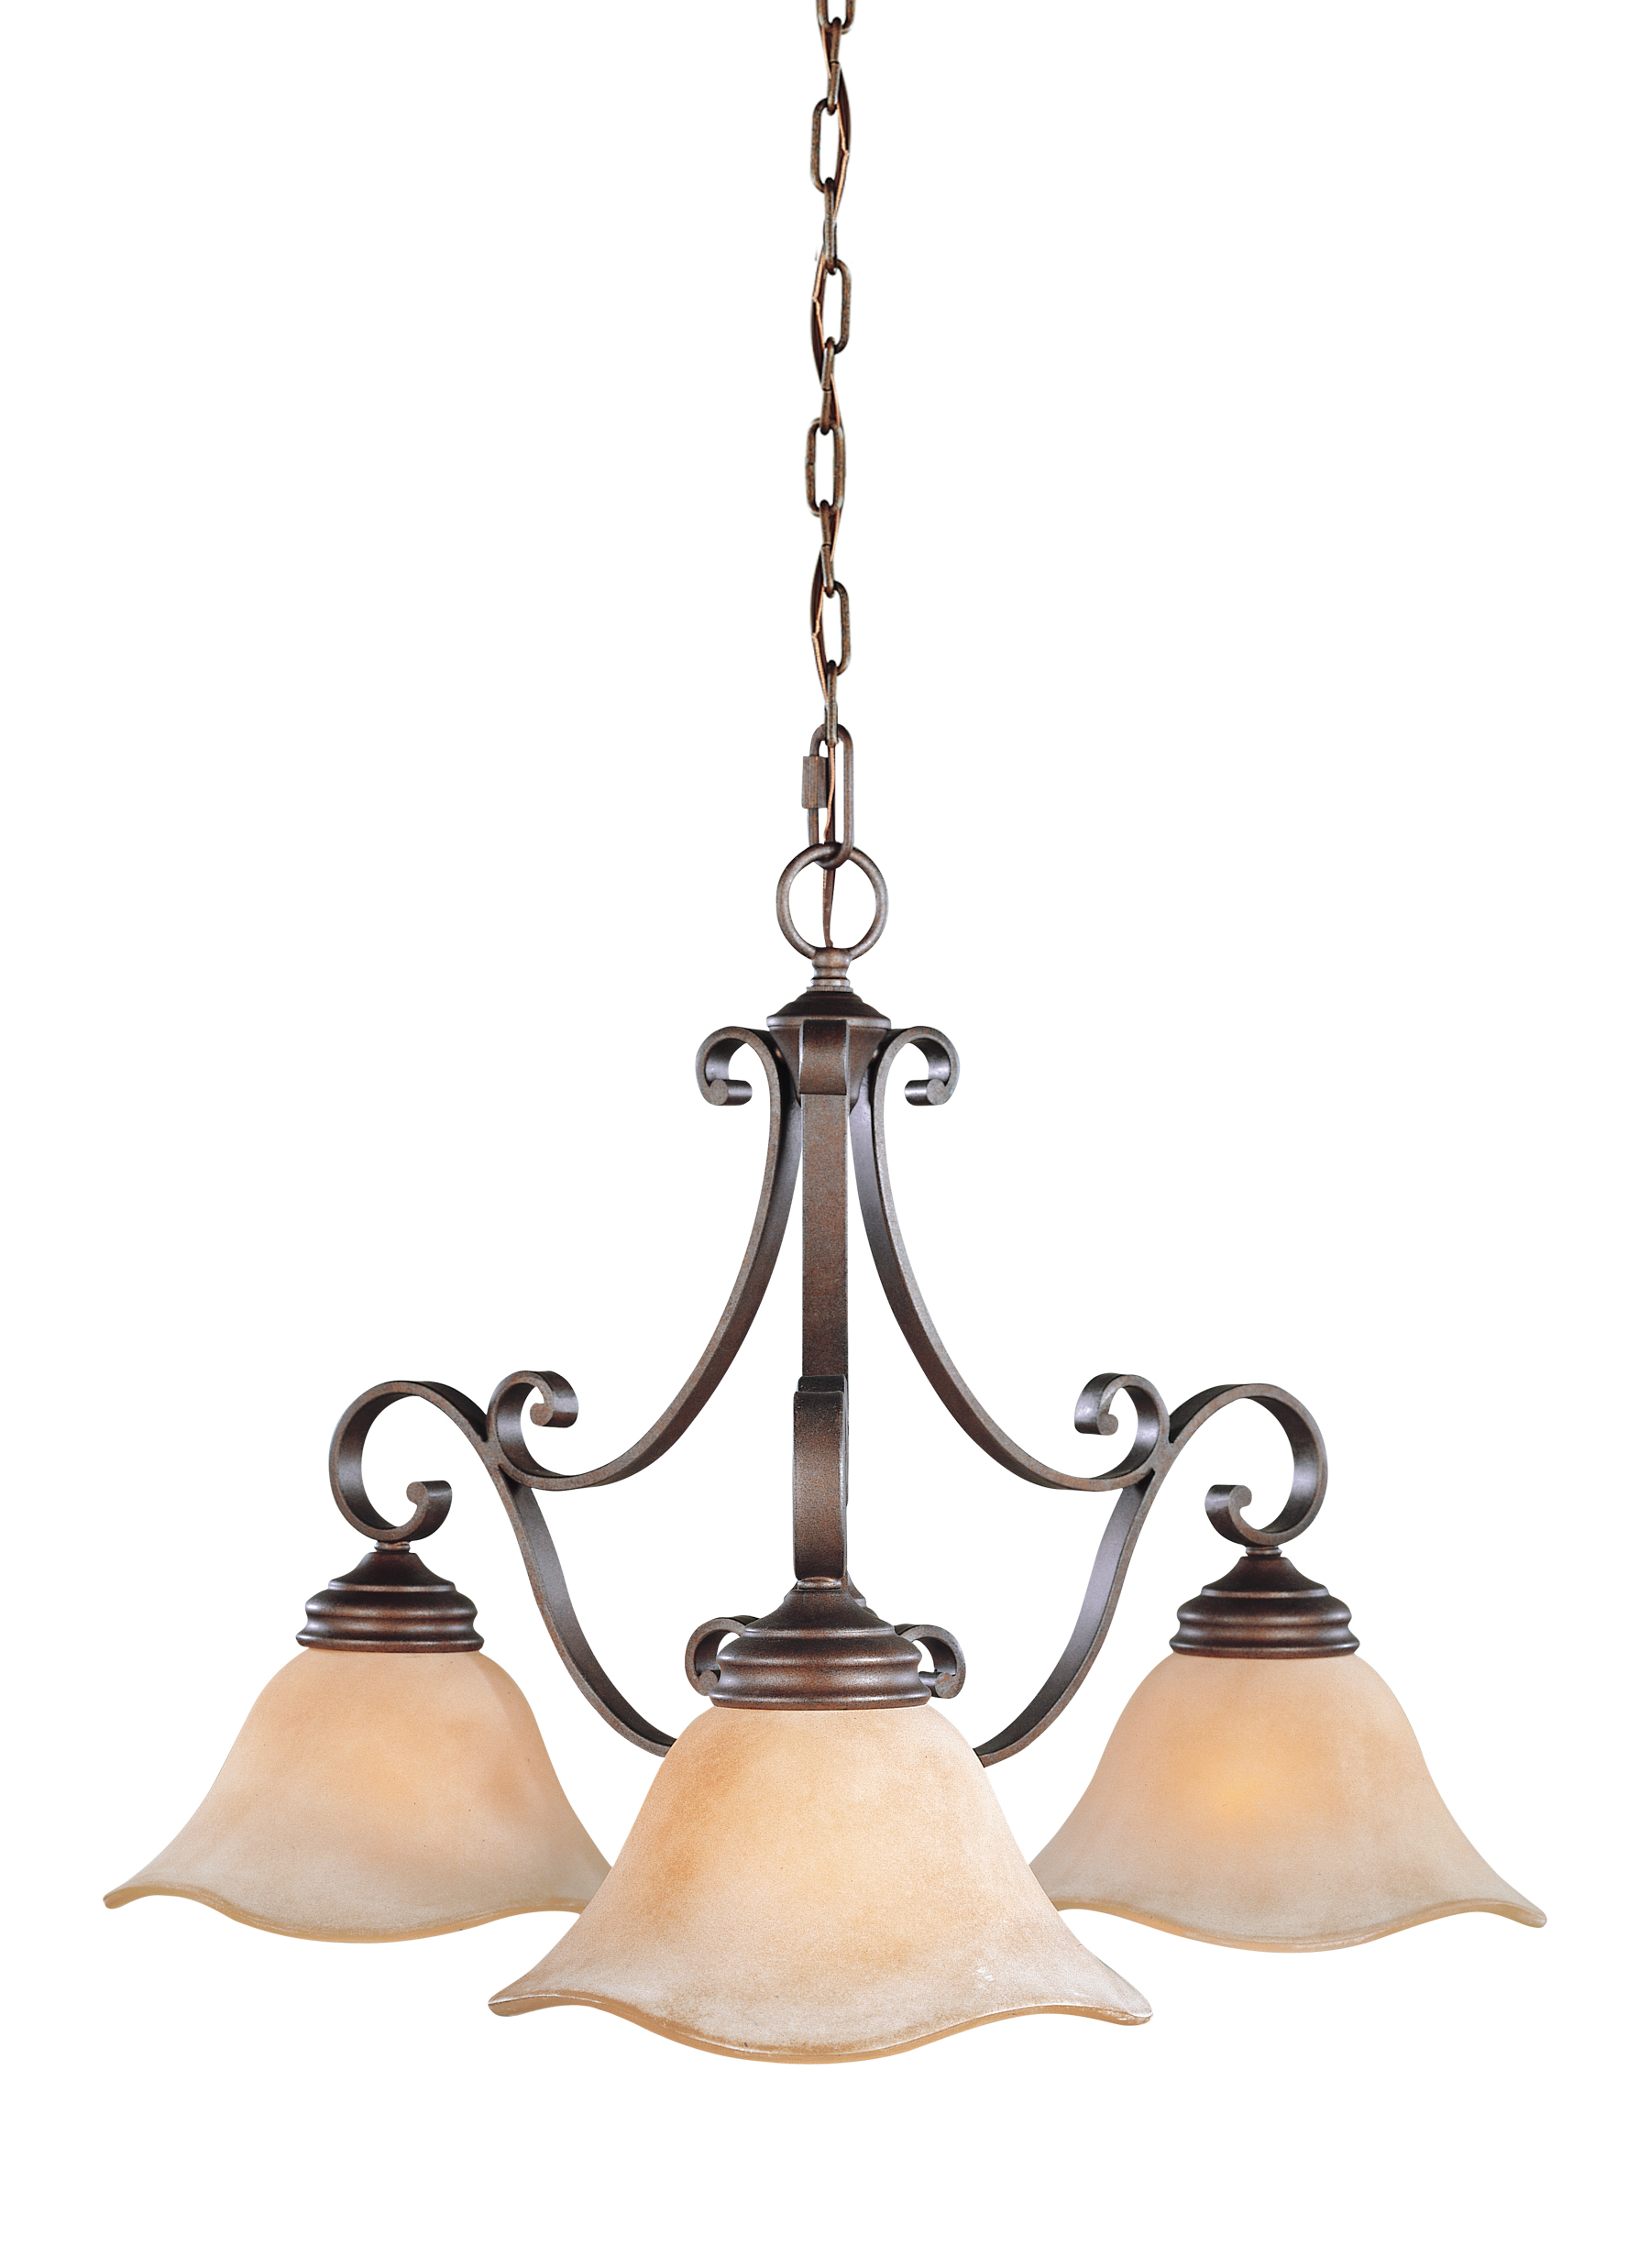 WB1194CB1 Light SconceCorinthian Bronze